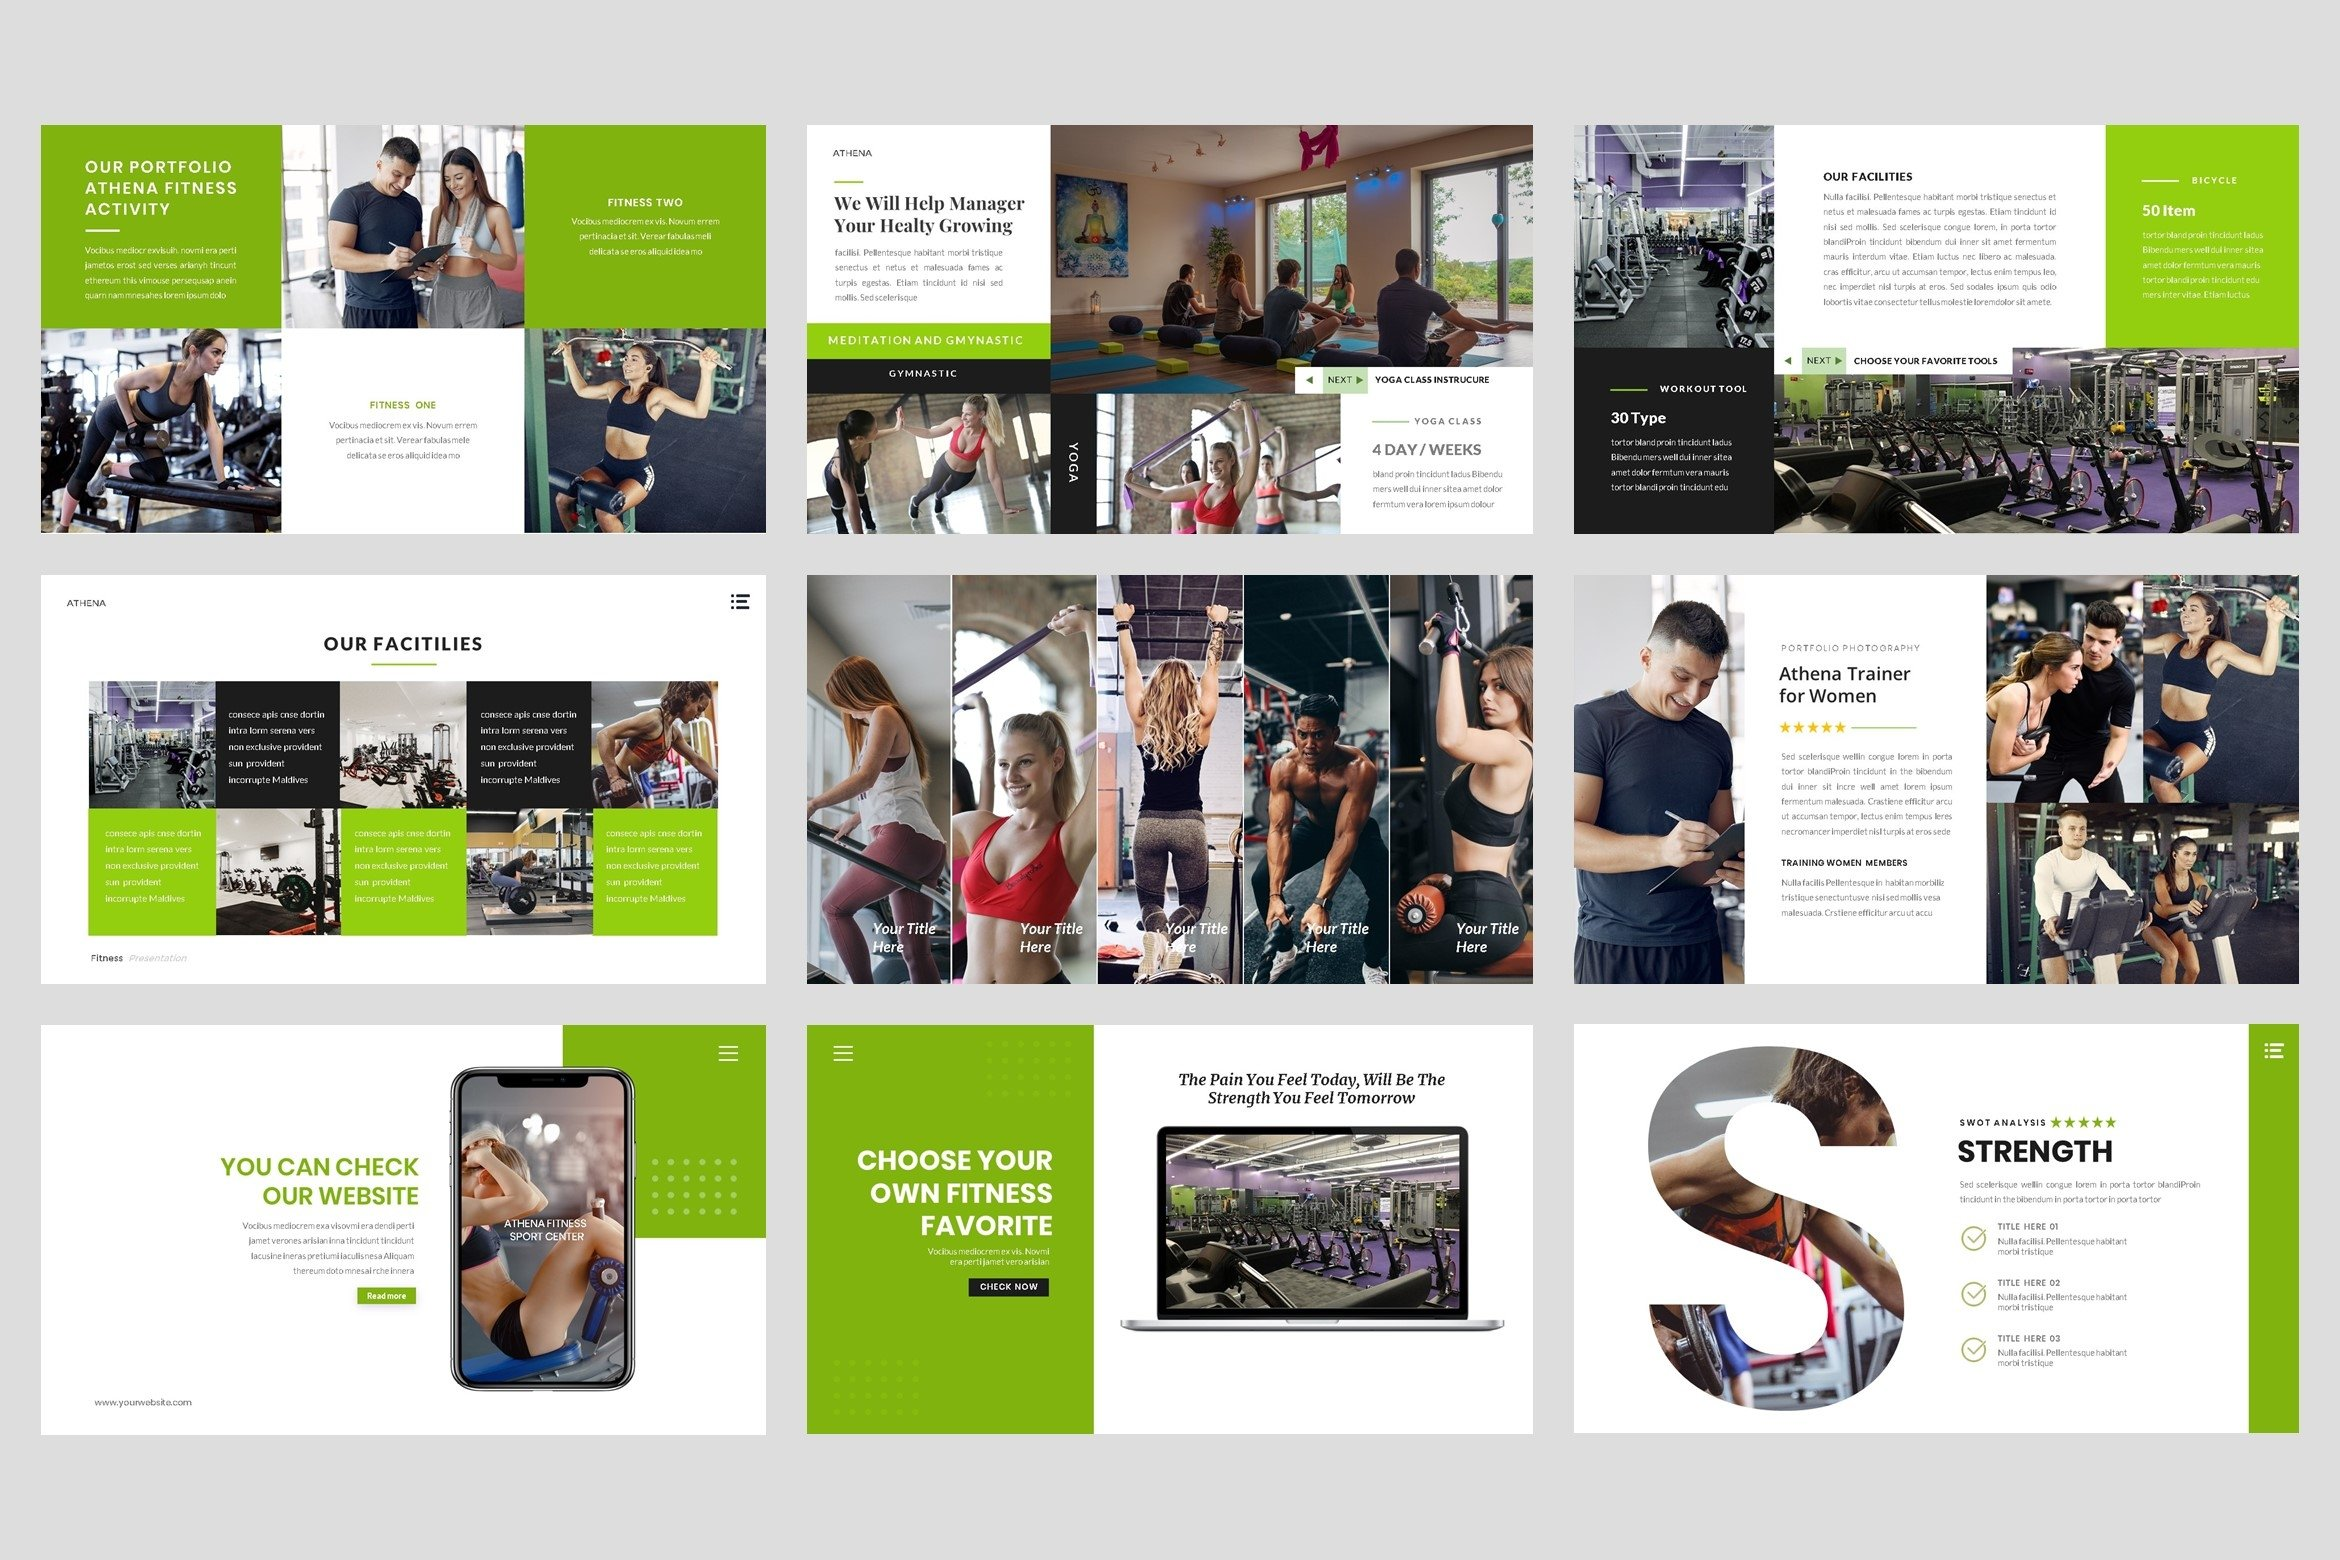 Sport - Fitness Business Workout PowerPoint Template example image 5